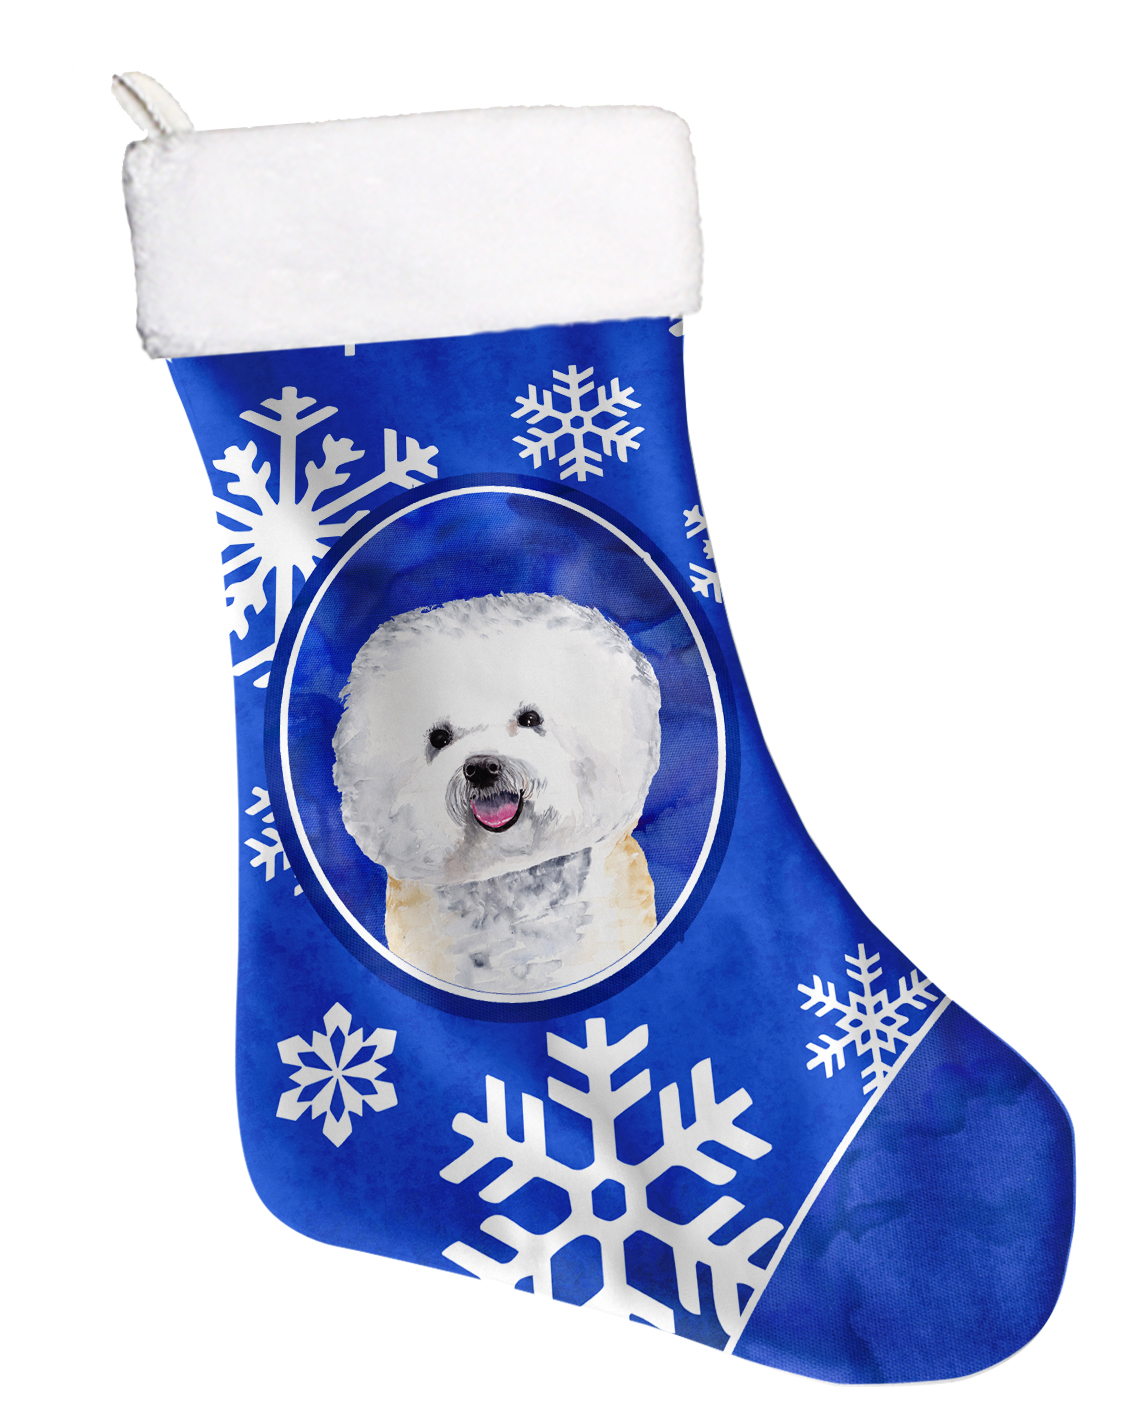 Bichon Frise Stocking Holder Hanger